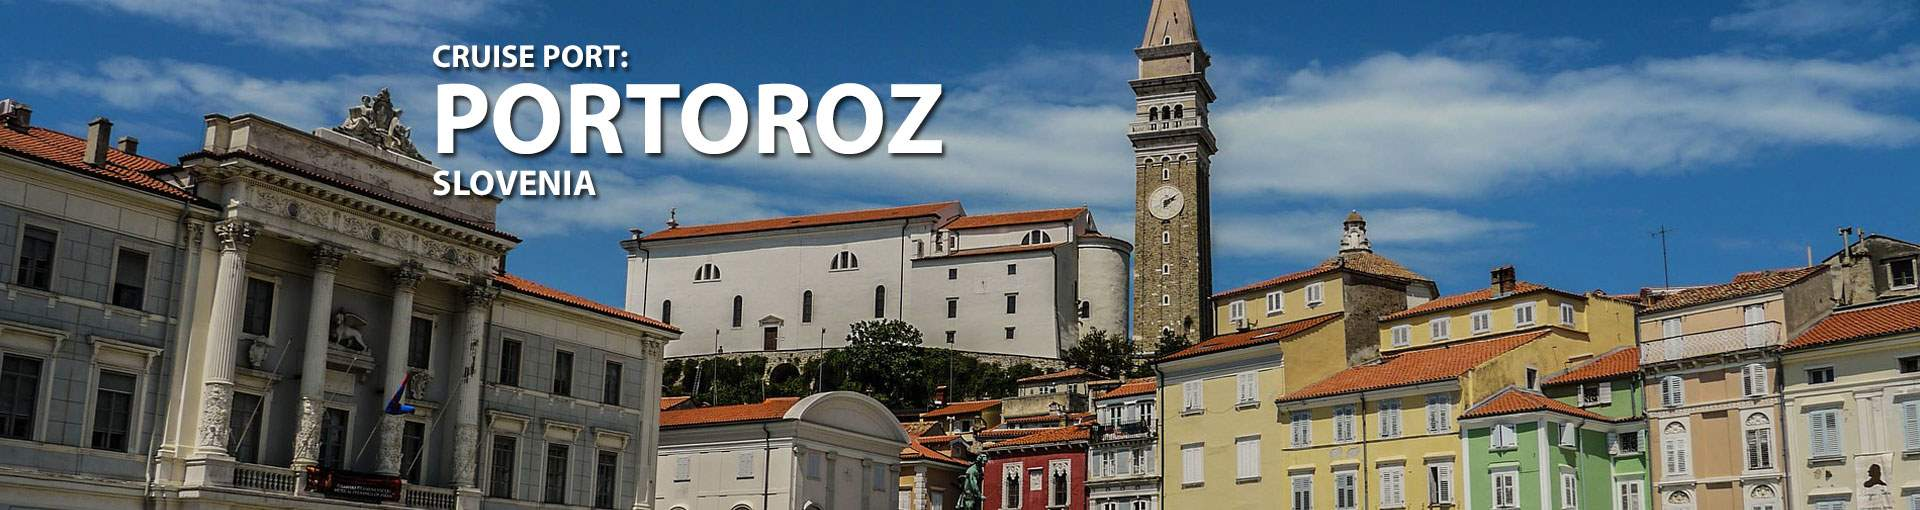 Banner for the cruise port of Portoroz, Solvenia